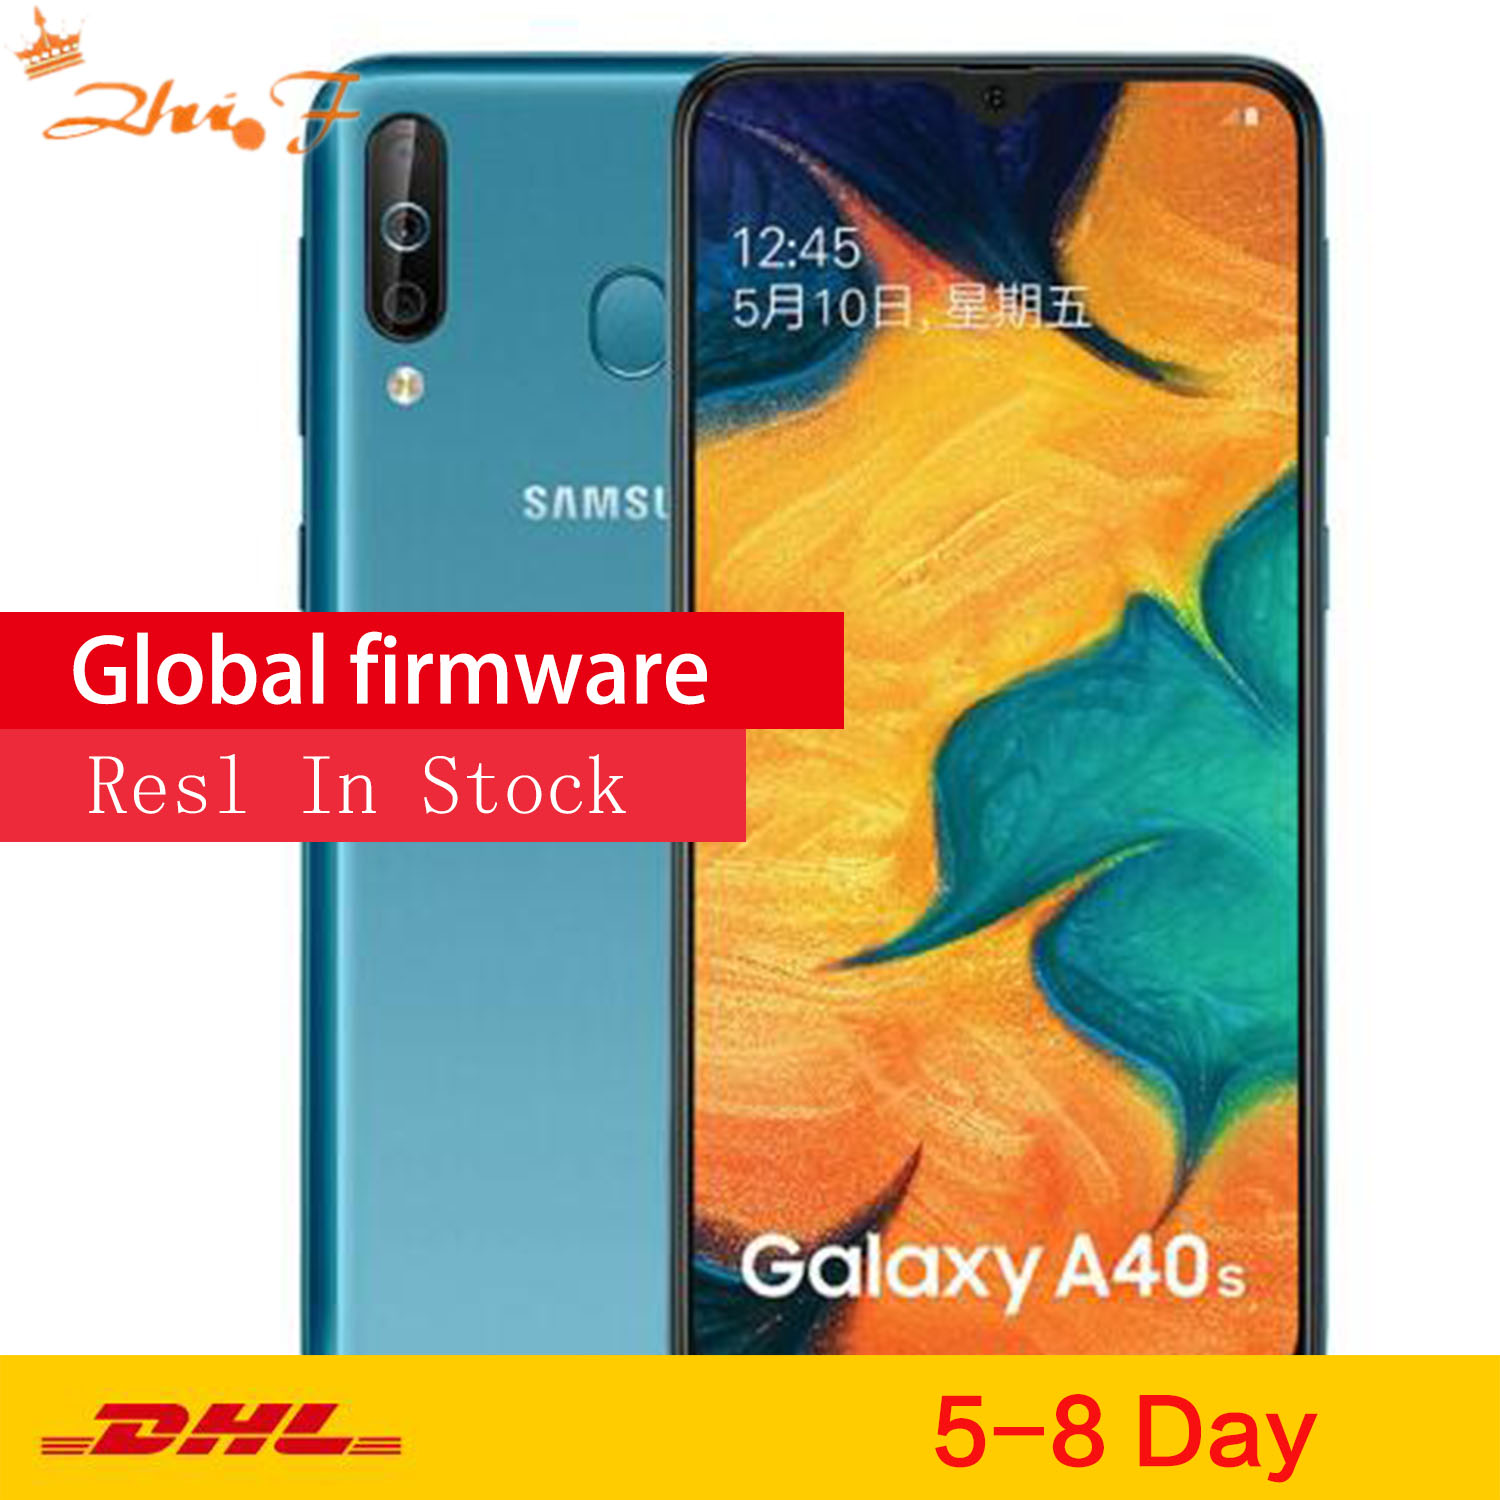 Samsung Galaxy A40s 4G LTE Android Smartphone 6.4 Inch Octa Core 6GB 64GB 5000mAh Super-fast Charging Face Unlock Mobile Phone